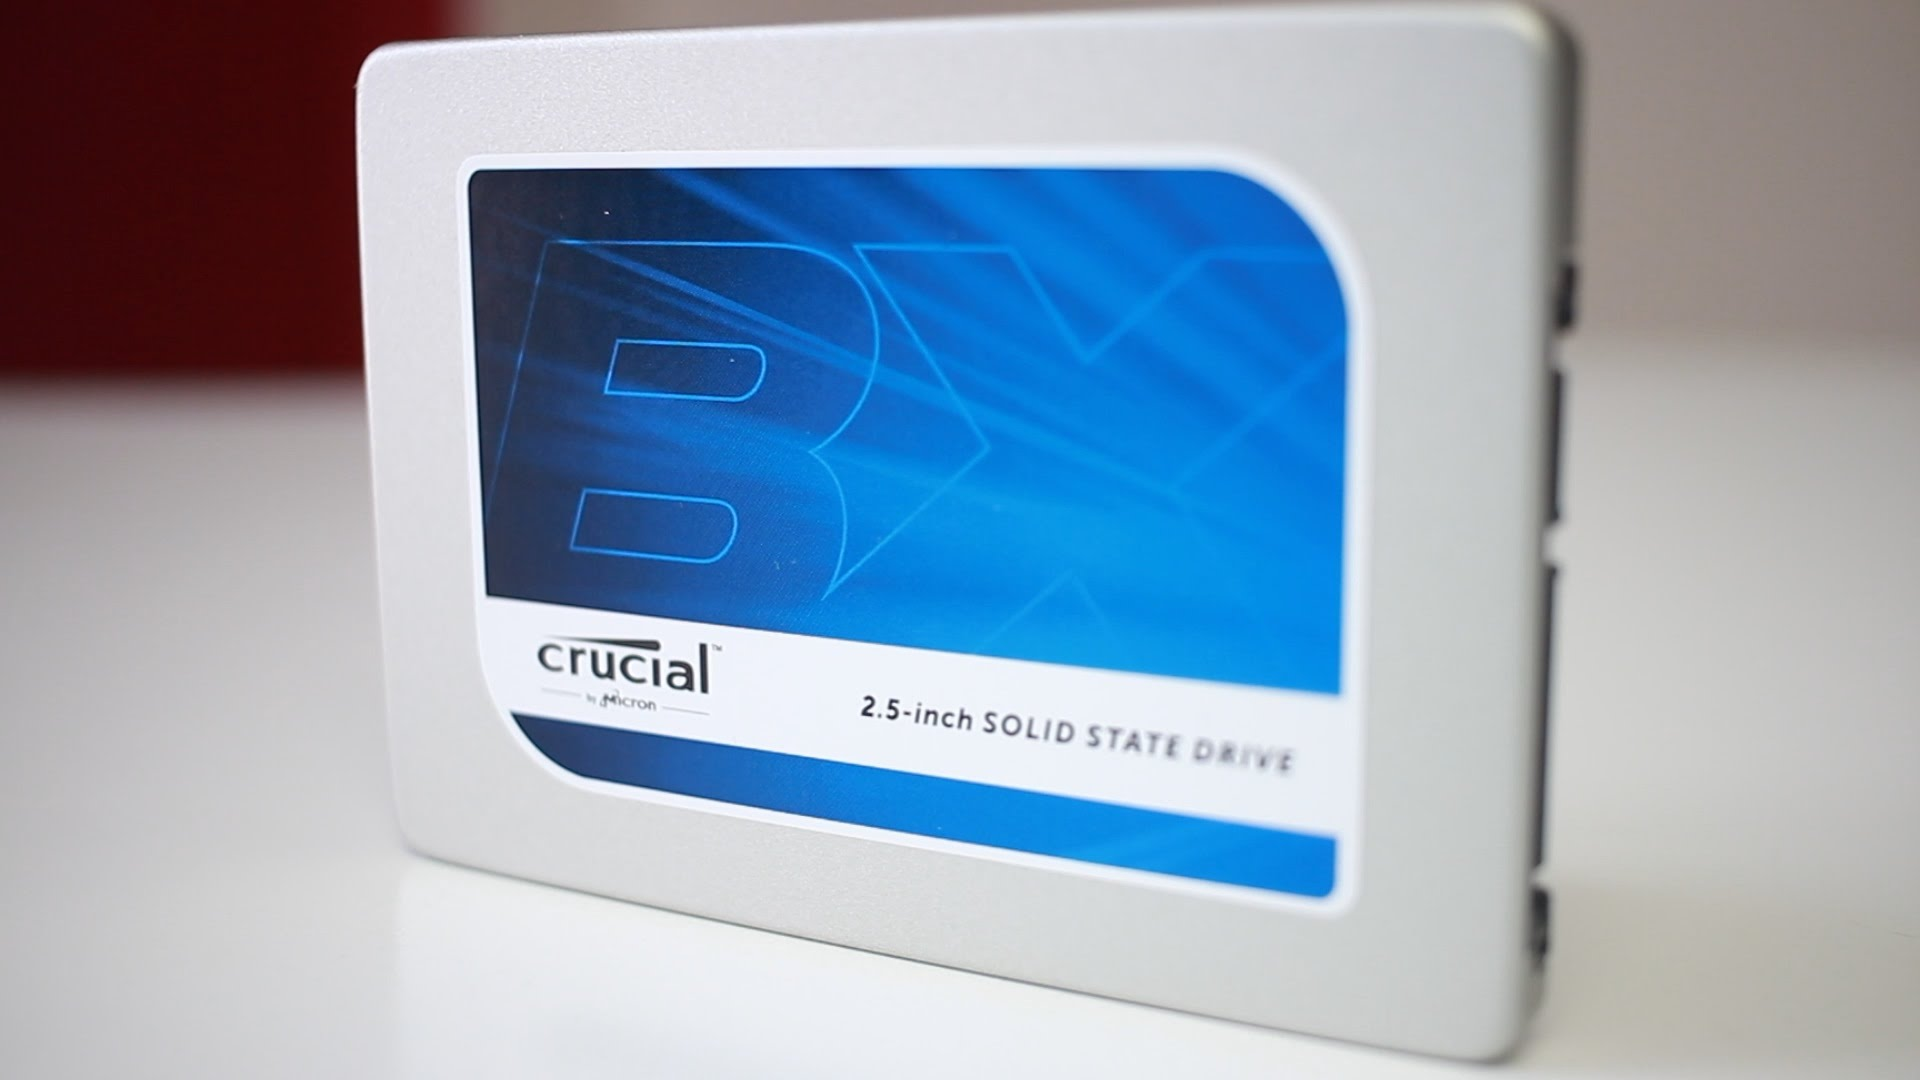 Photo of hijack before it's over: Crucial's BX100 SSDs at a great price